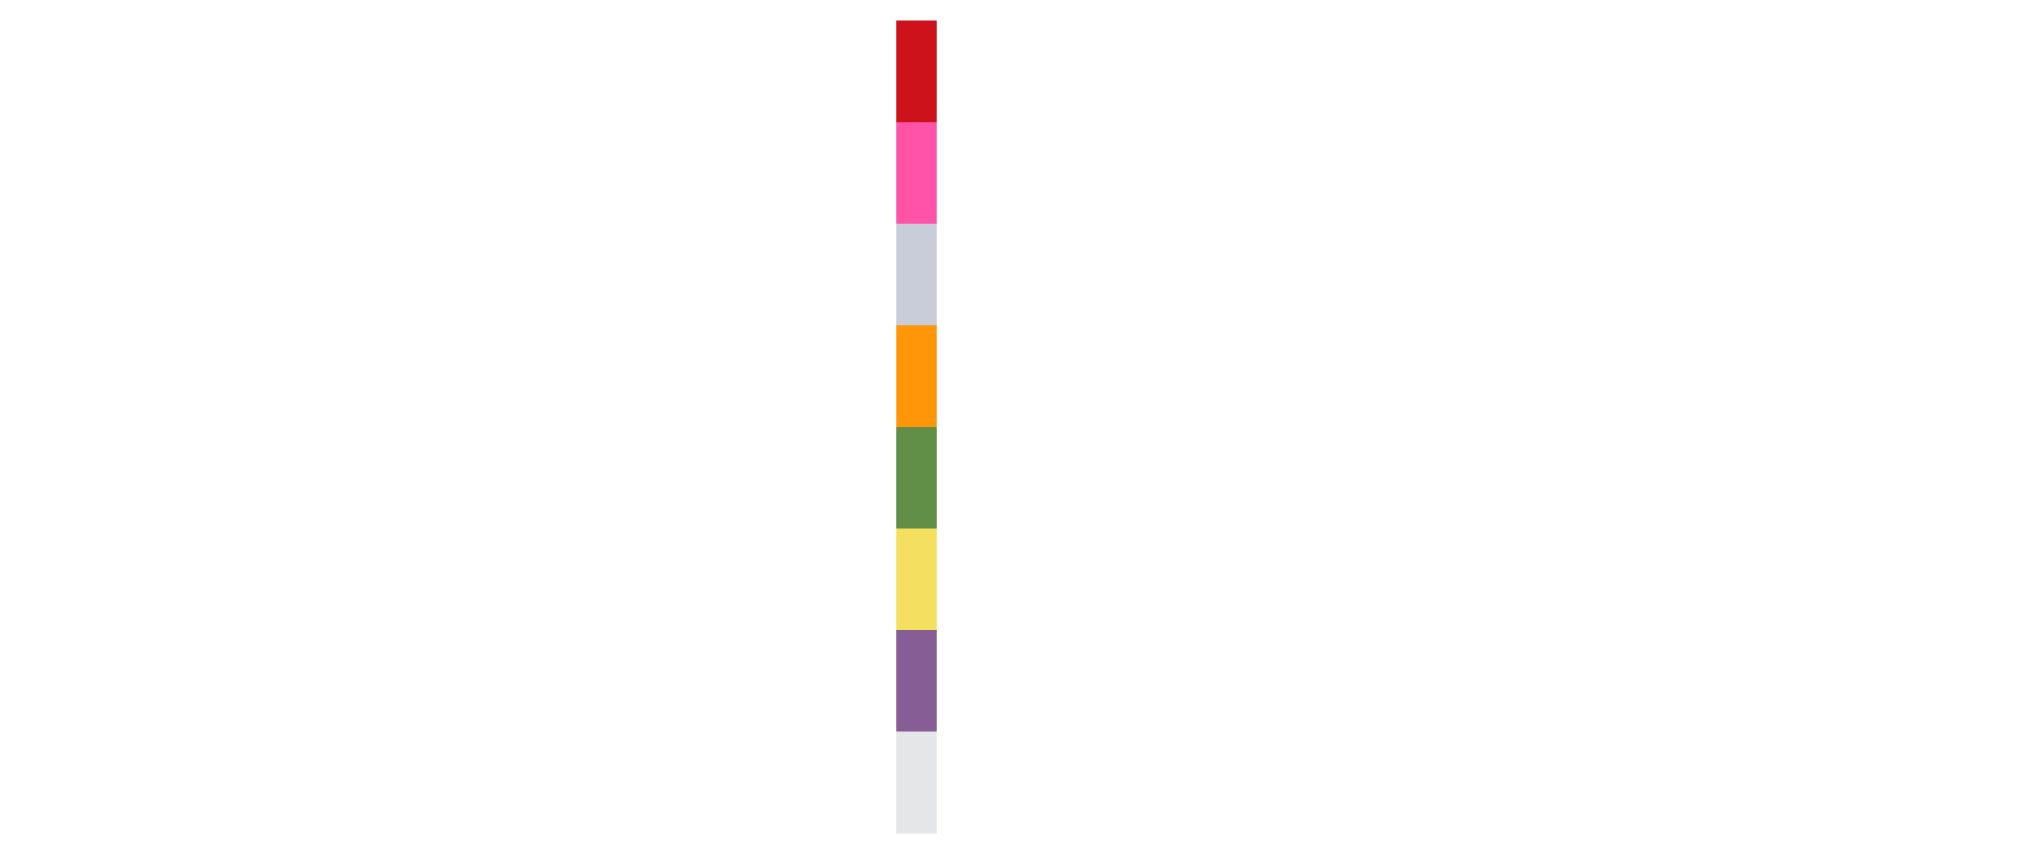 Eia Hawaii Fund Teams Up With Consulting Firm Nascent Vek Eia Hawai'i Festival